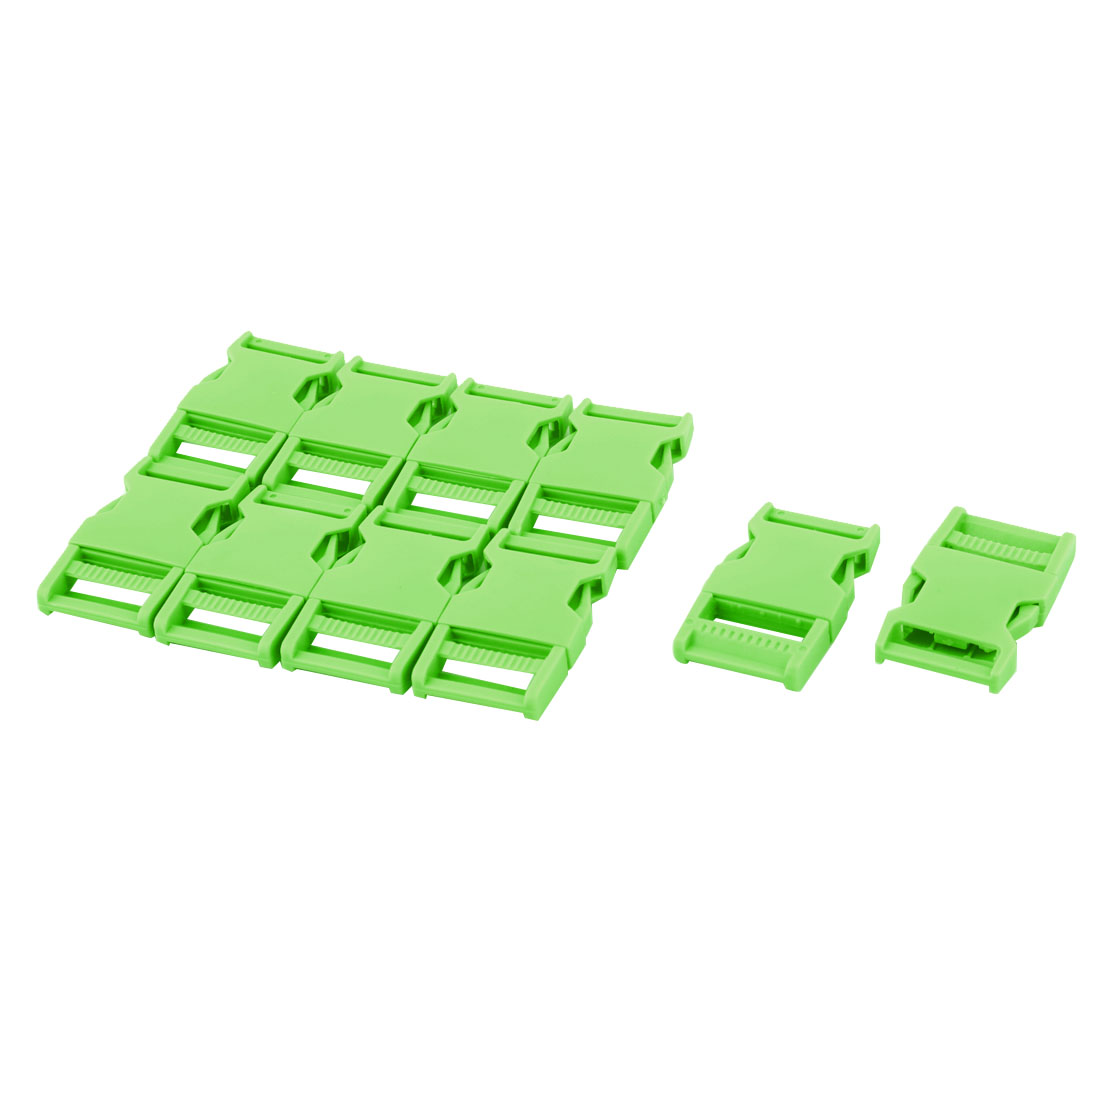 Schoolbag Plastic Webbing Strap Adjustive Double Side Quick Release Buckle Green 10 Pcs